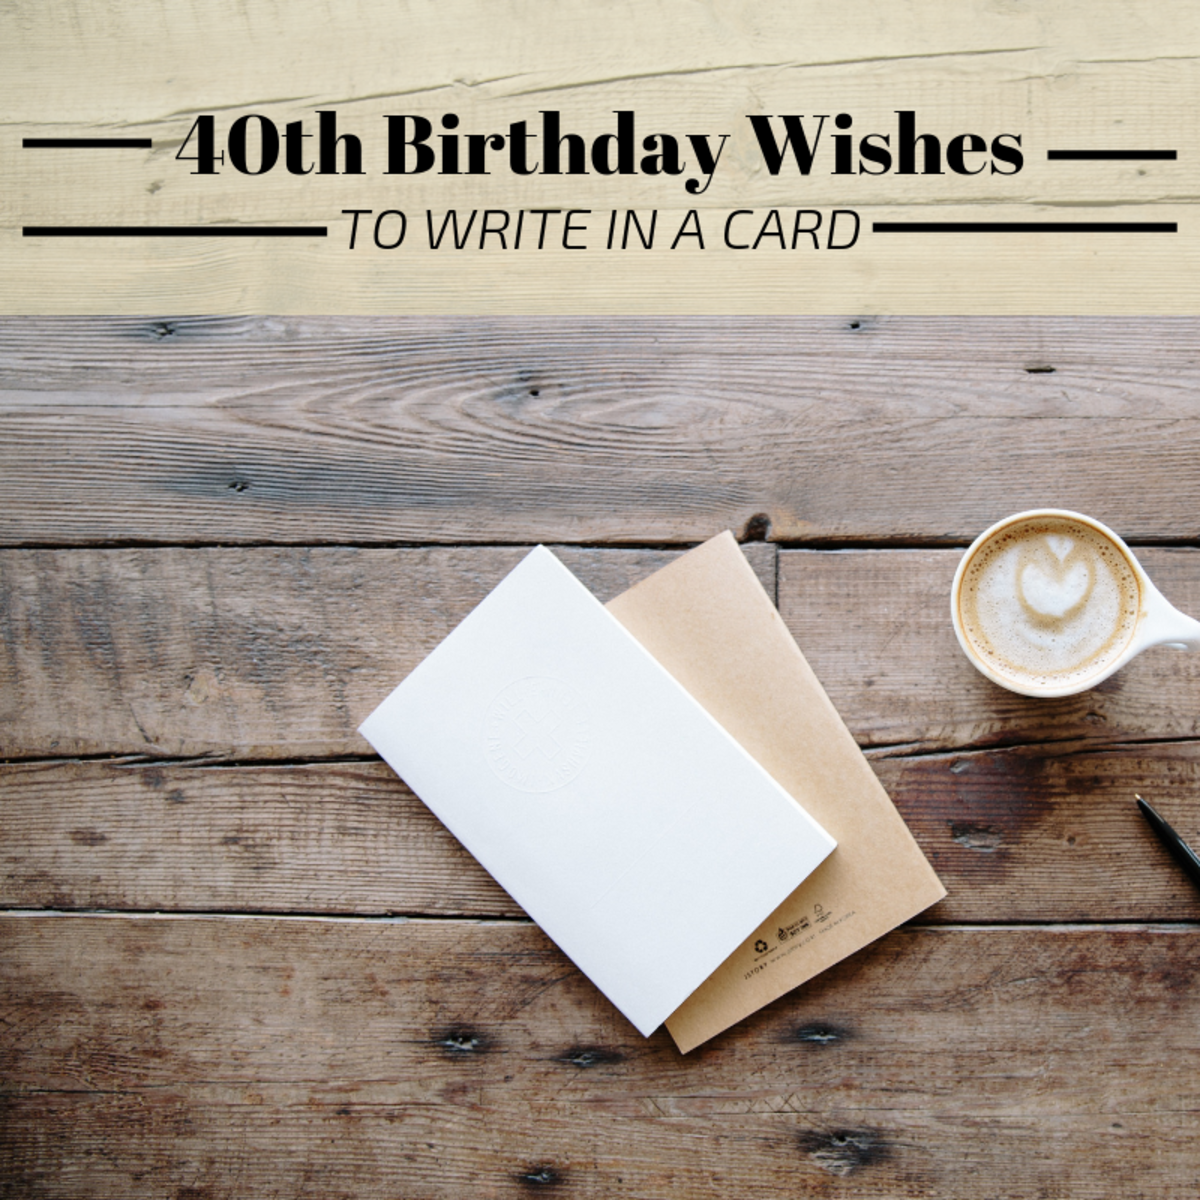 40 is a major milestone—find the right words to wish them well on the big day.